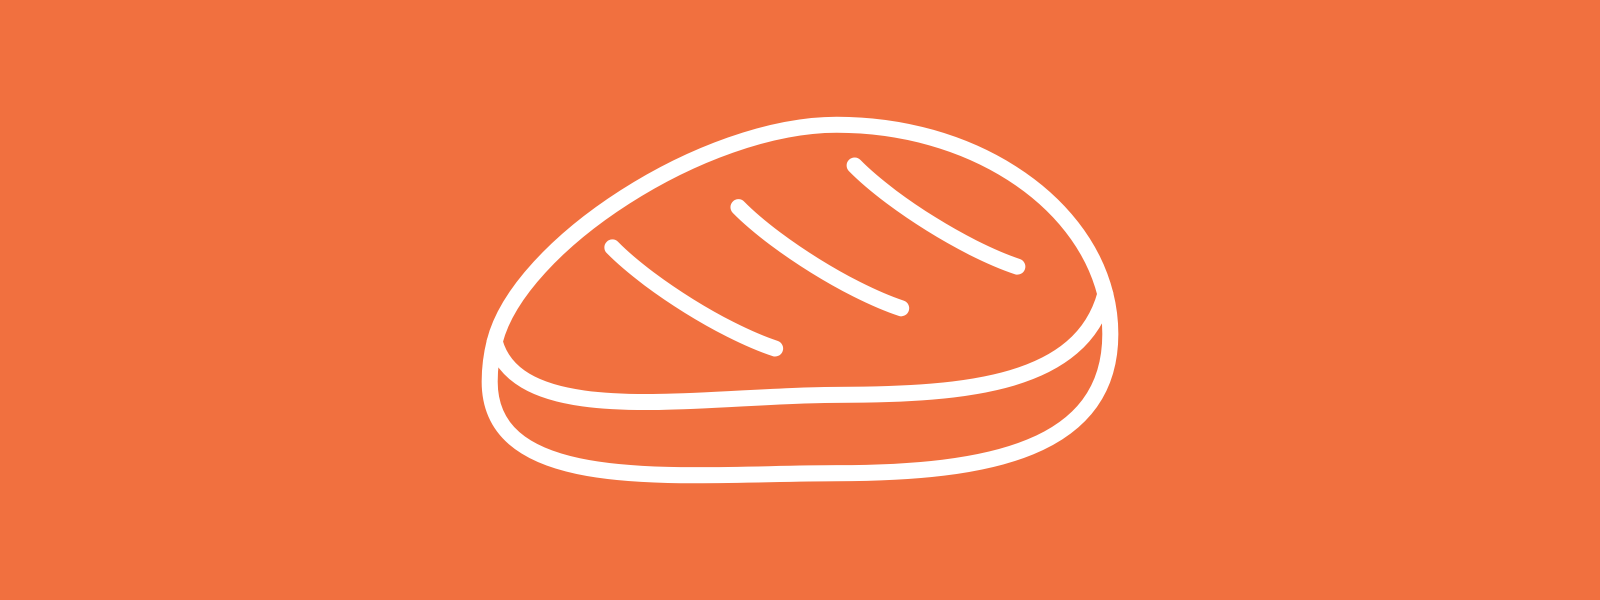 Icon background of a steak